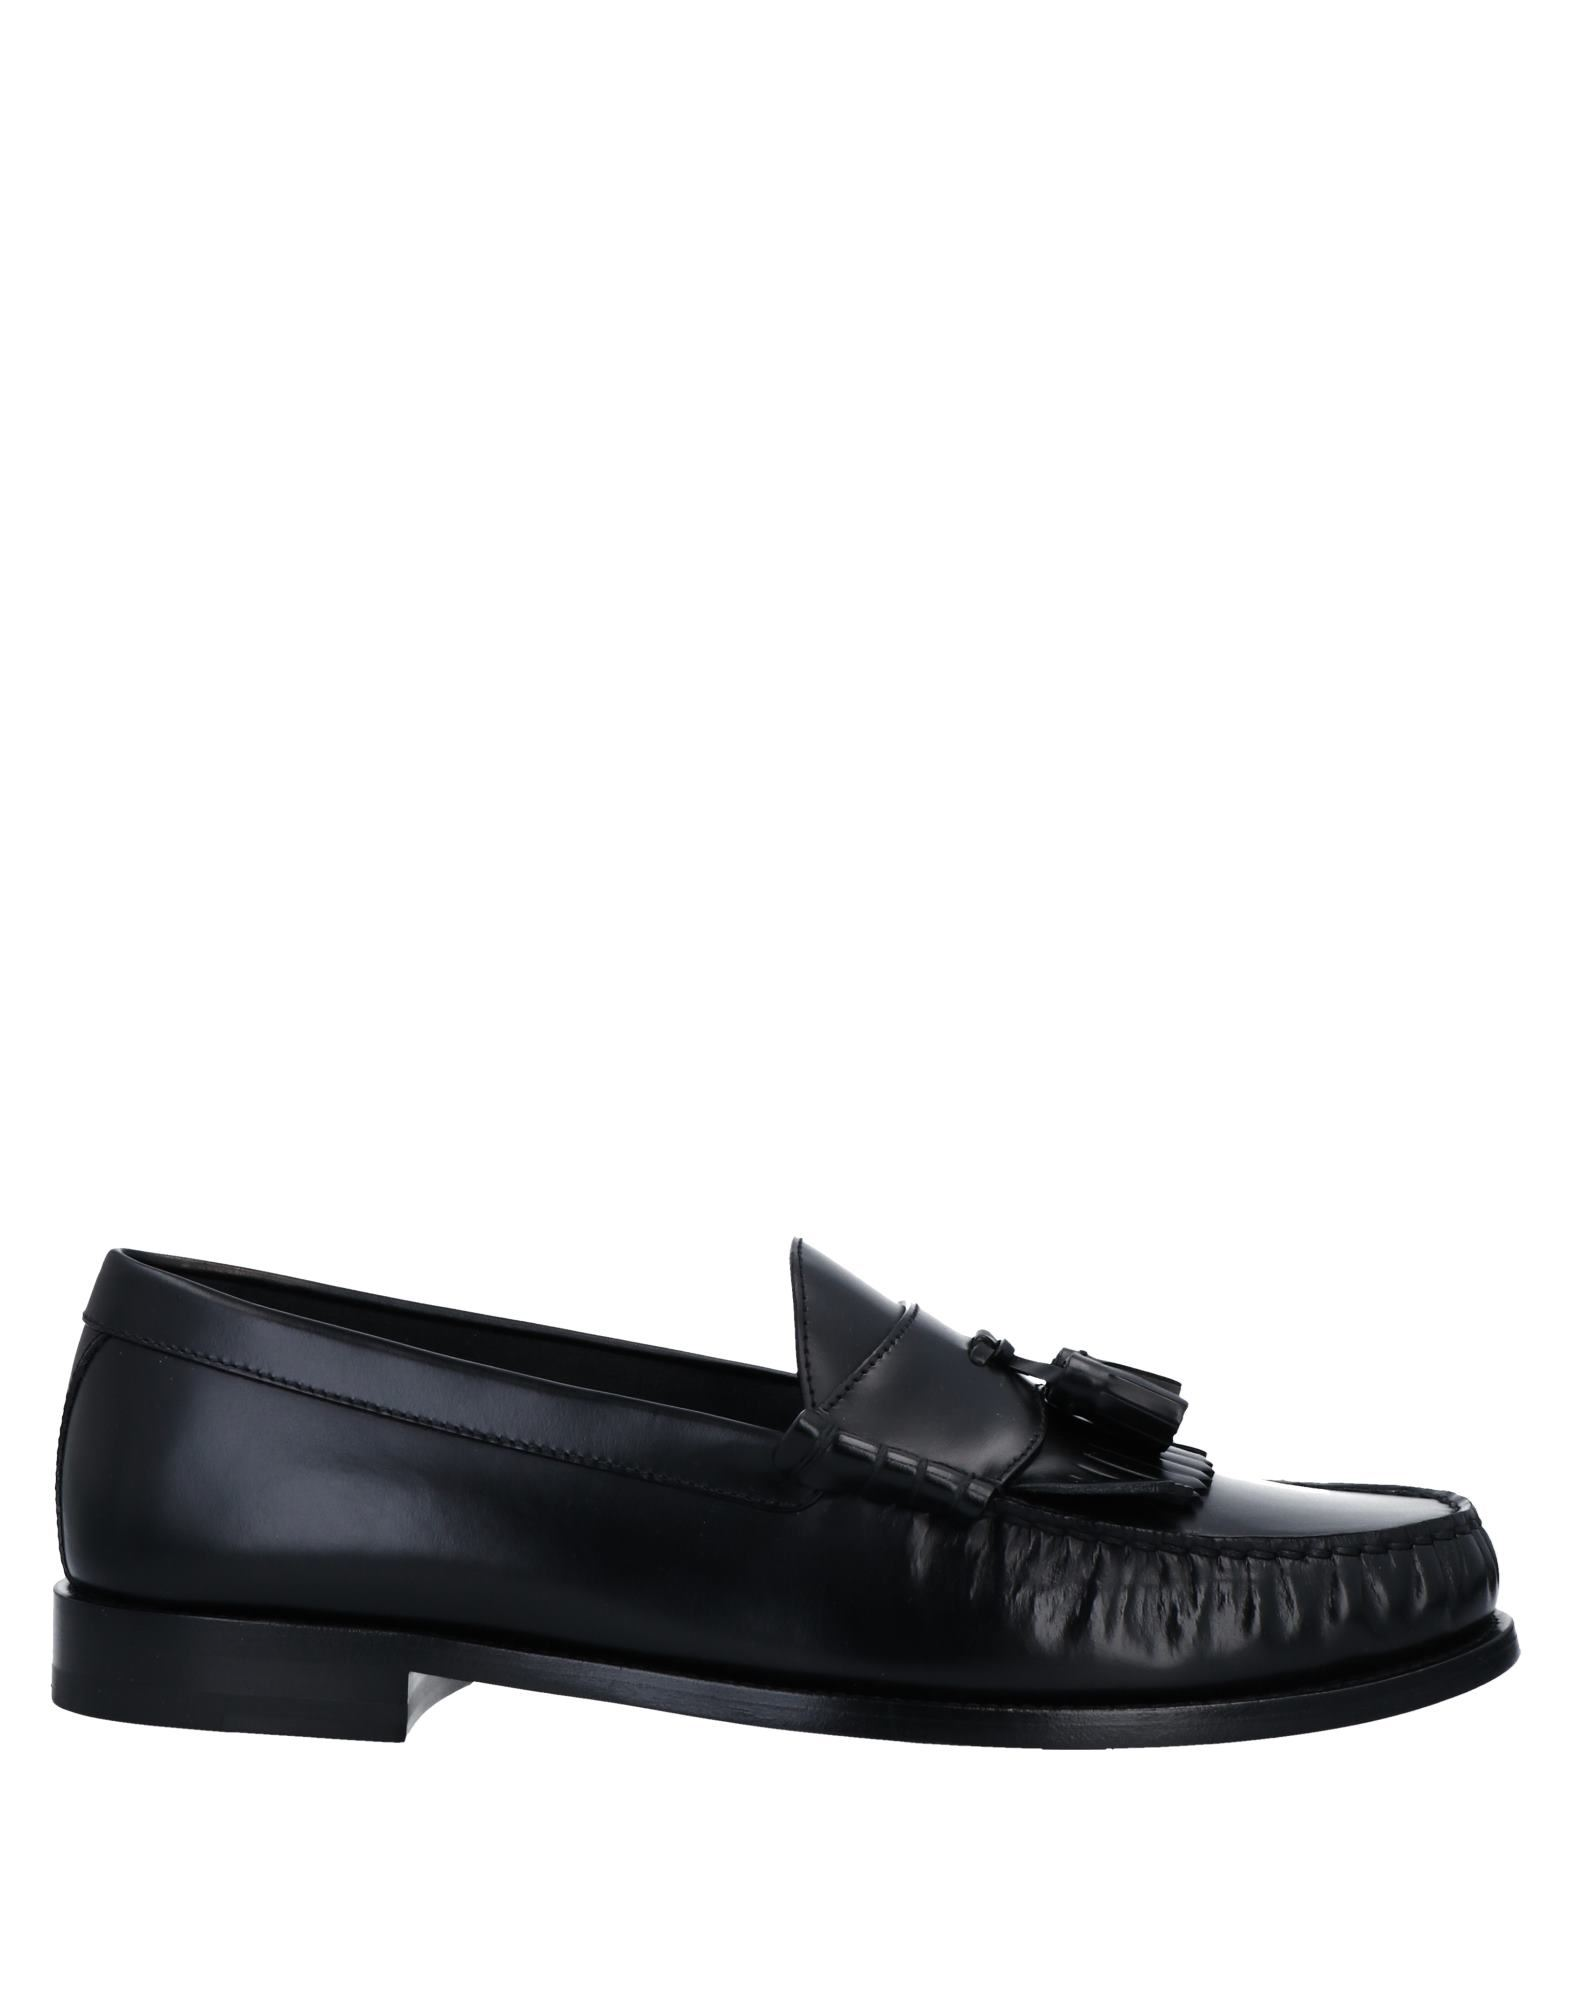 polished leather, tassels, solid color, round toeline, square heel, leather lining, leather sole, co